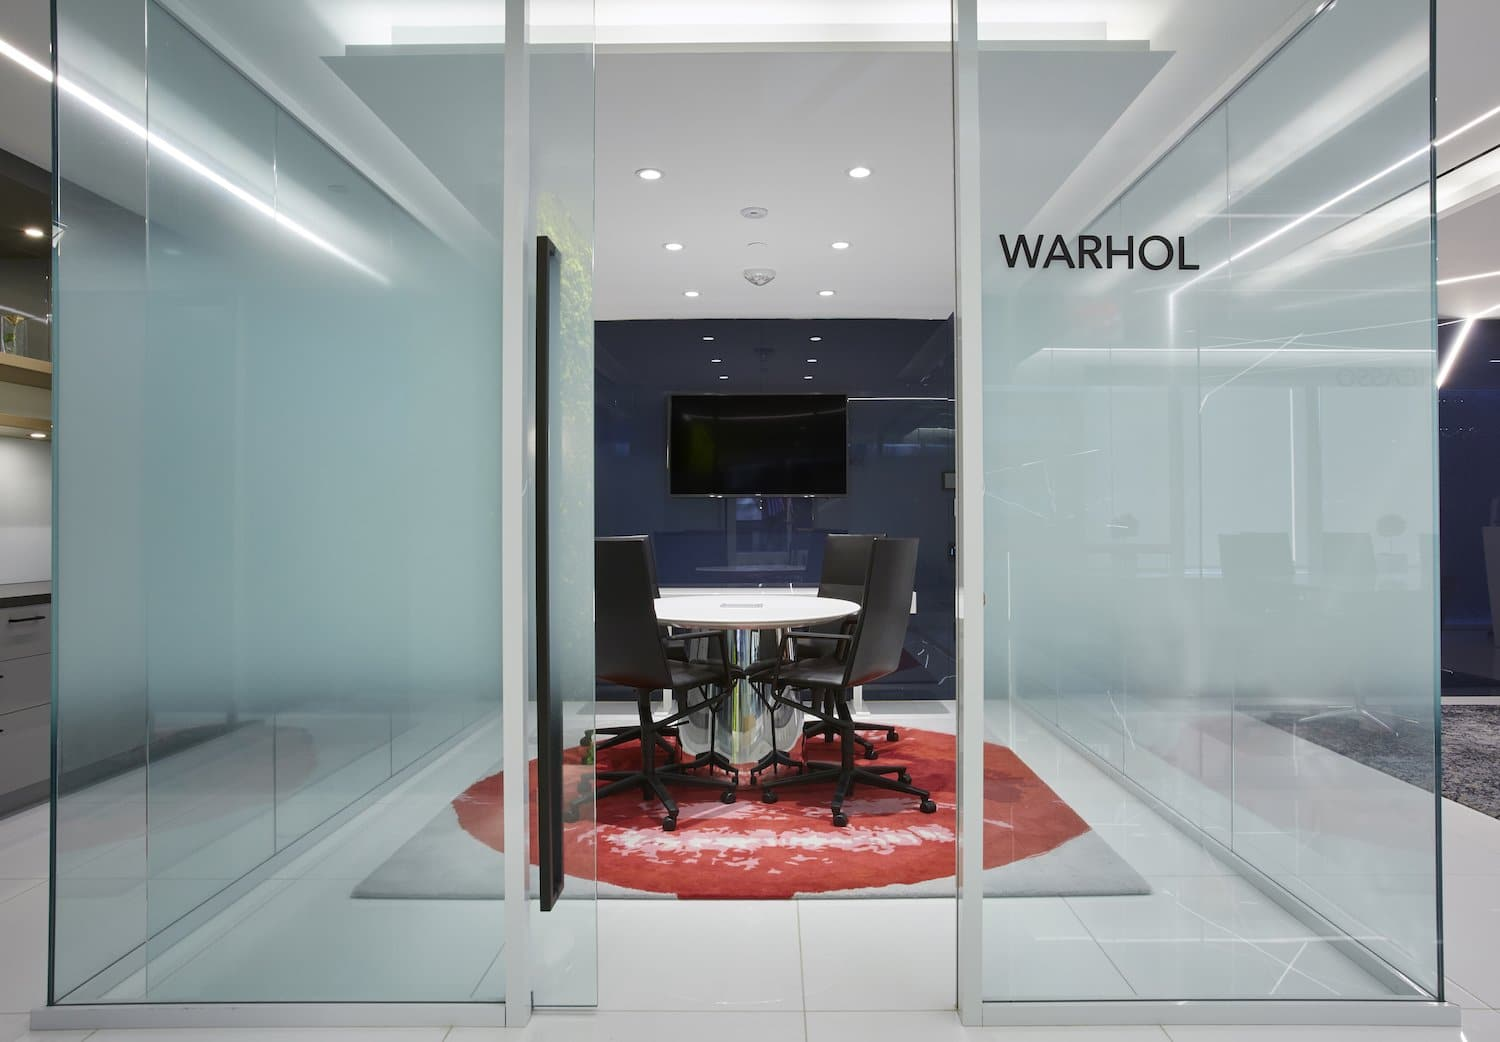 Warhol meeting room with frosted glass panels